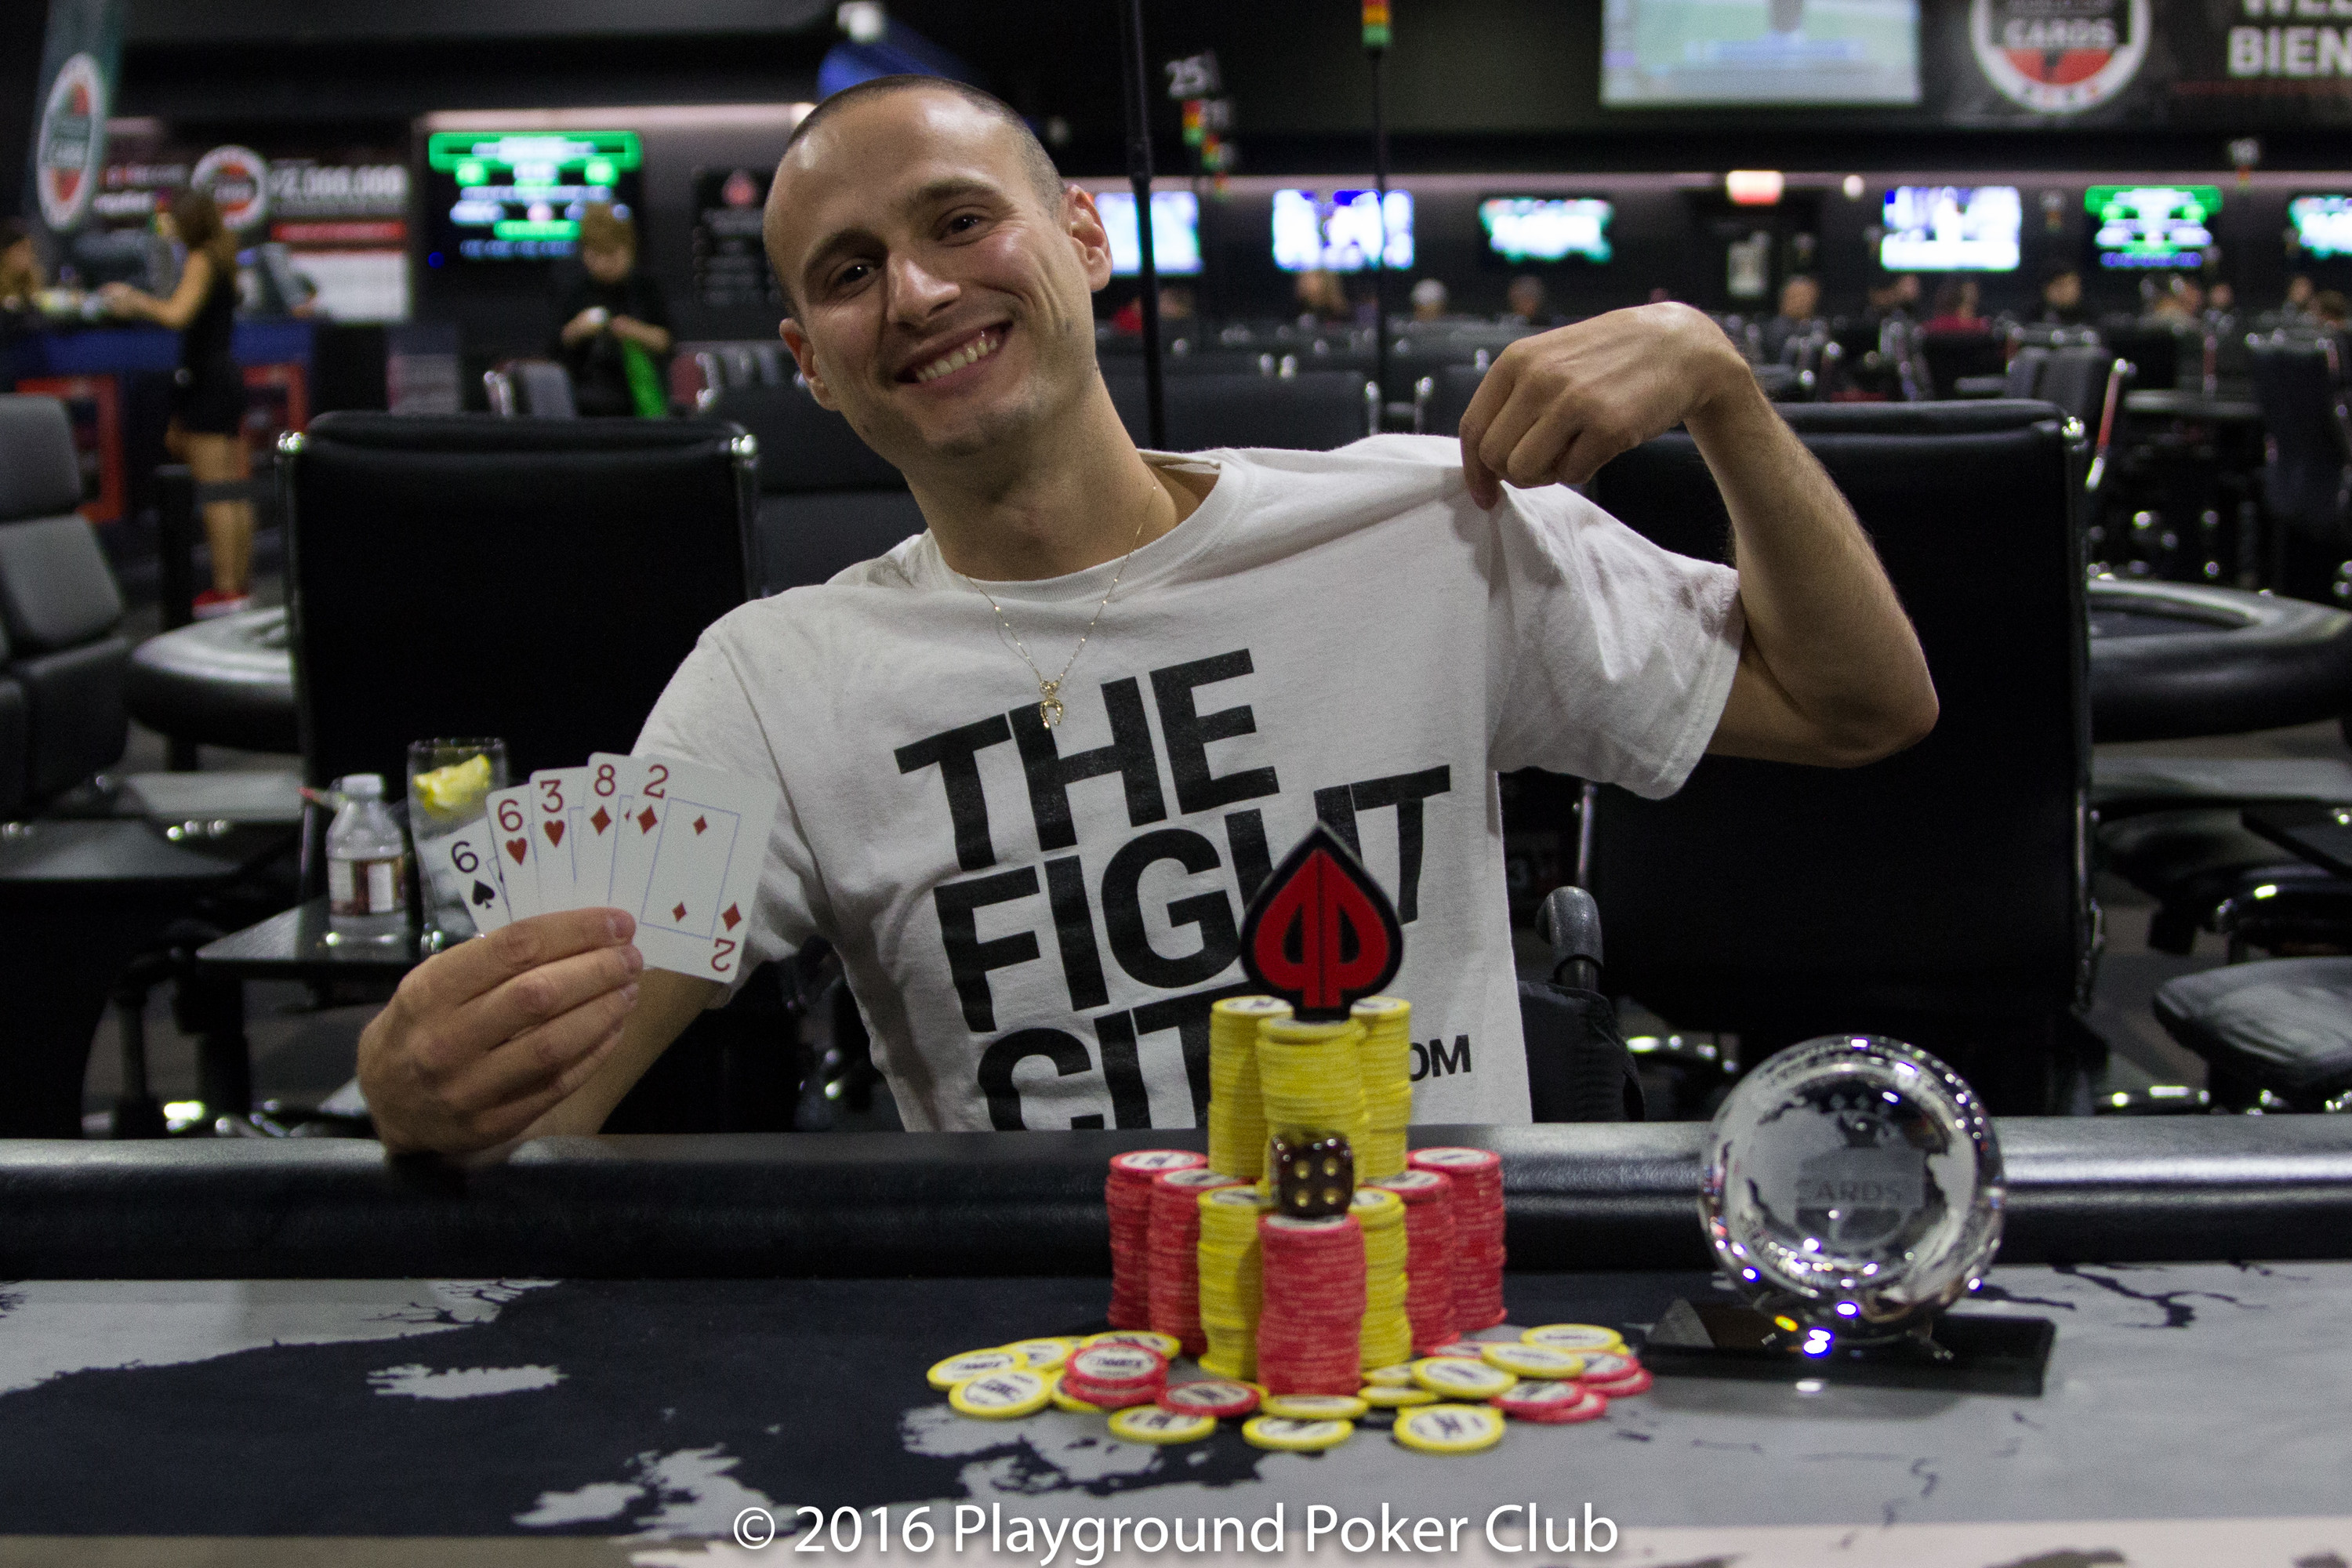 World Cup of Cards in Full Swing: Tommy Coulombe Wins All-Stars for Starlight Tournament... 107